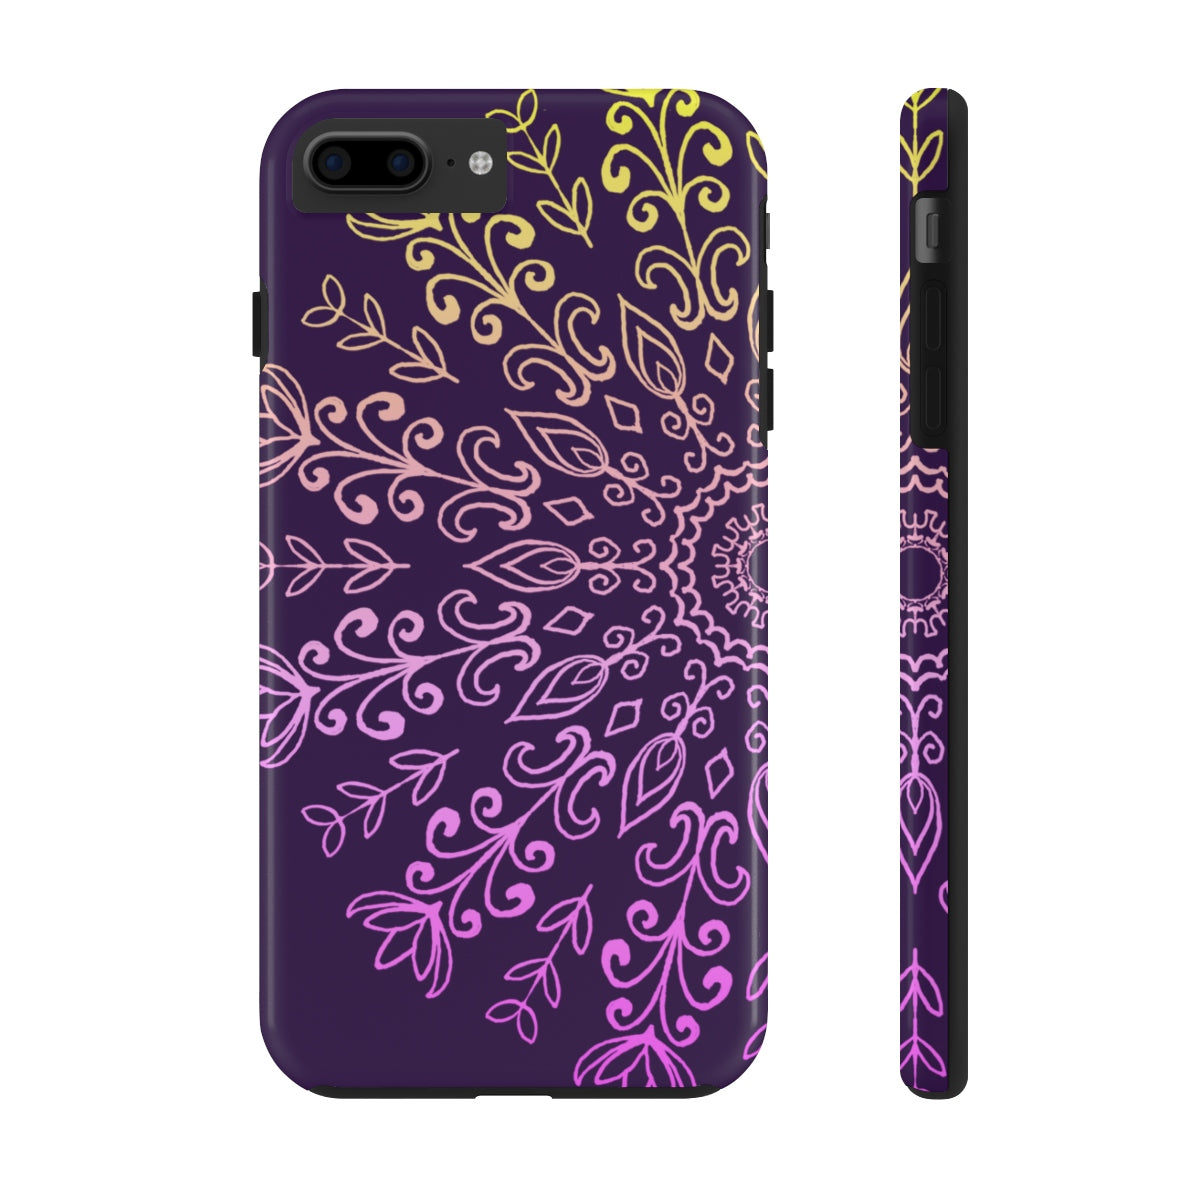 Flower Mandala Case Mate Tough Phone Cases